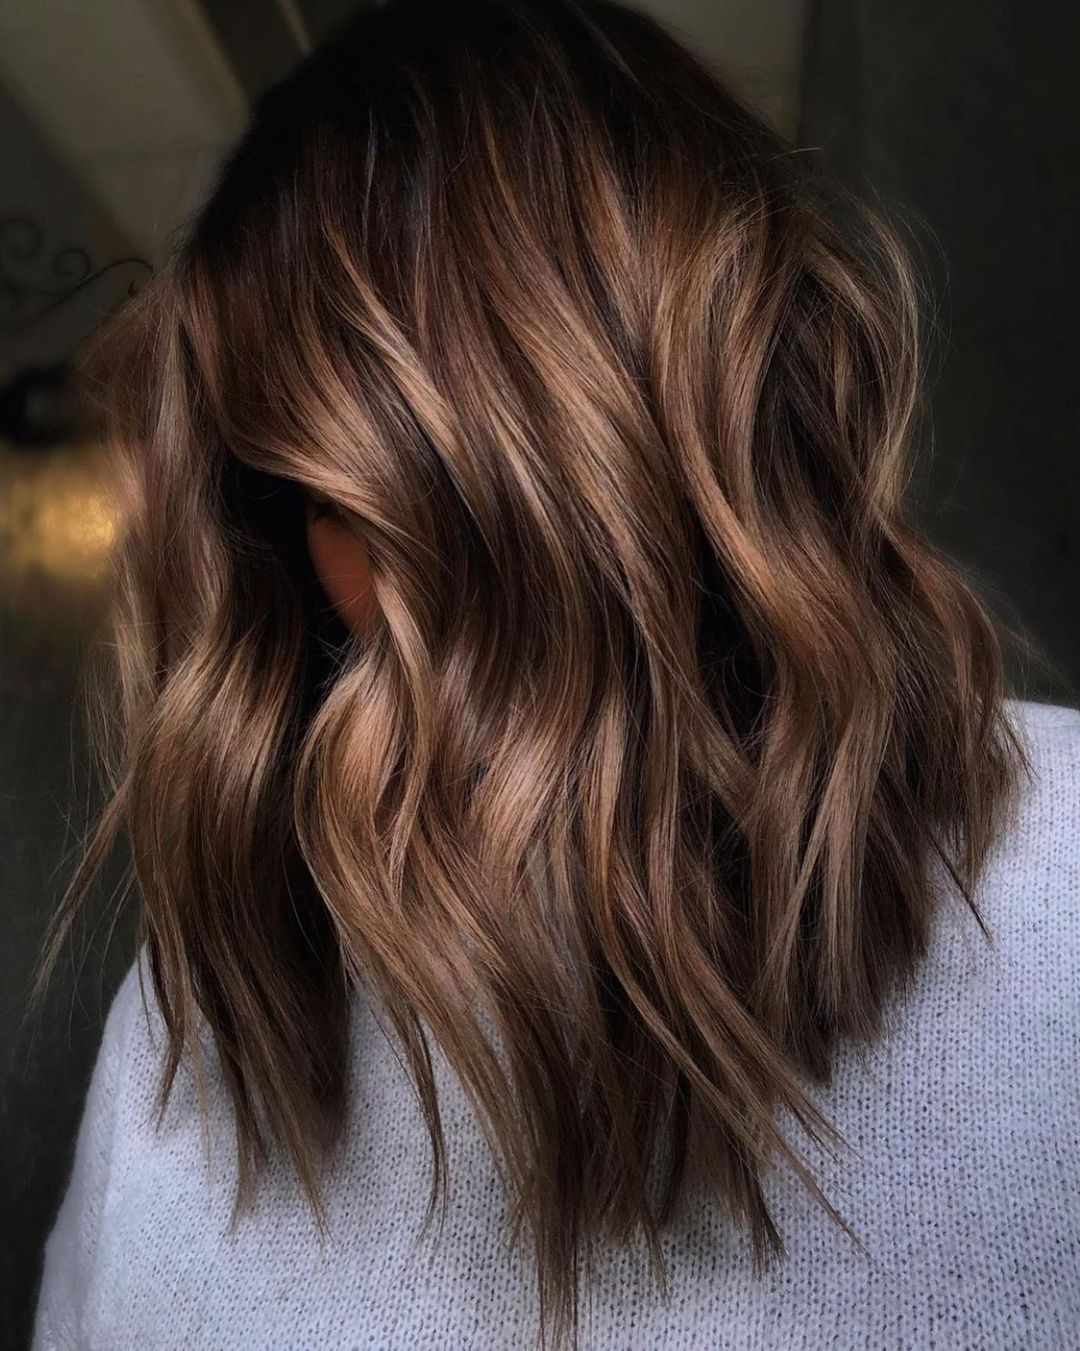 Is It Easy to Maintain Balayage Highlights